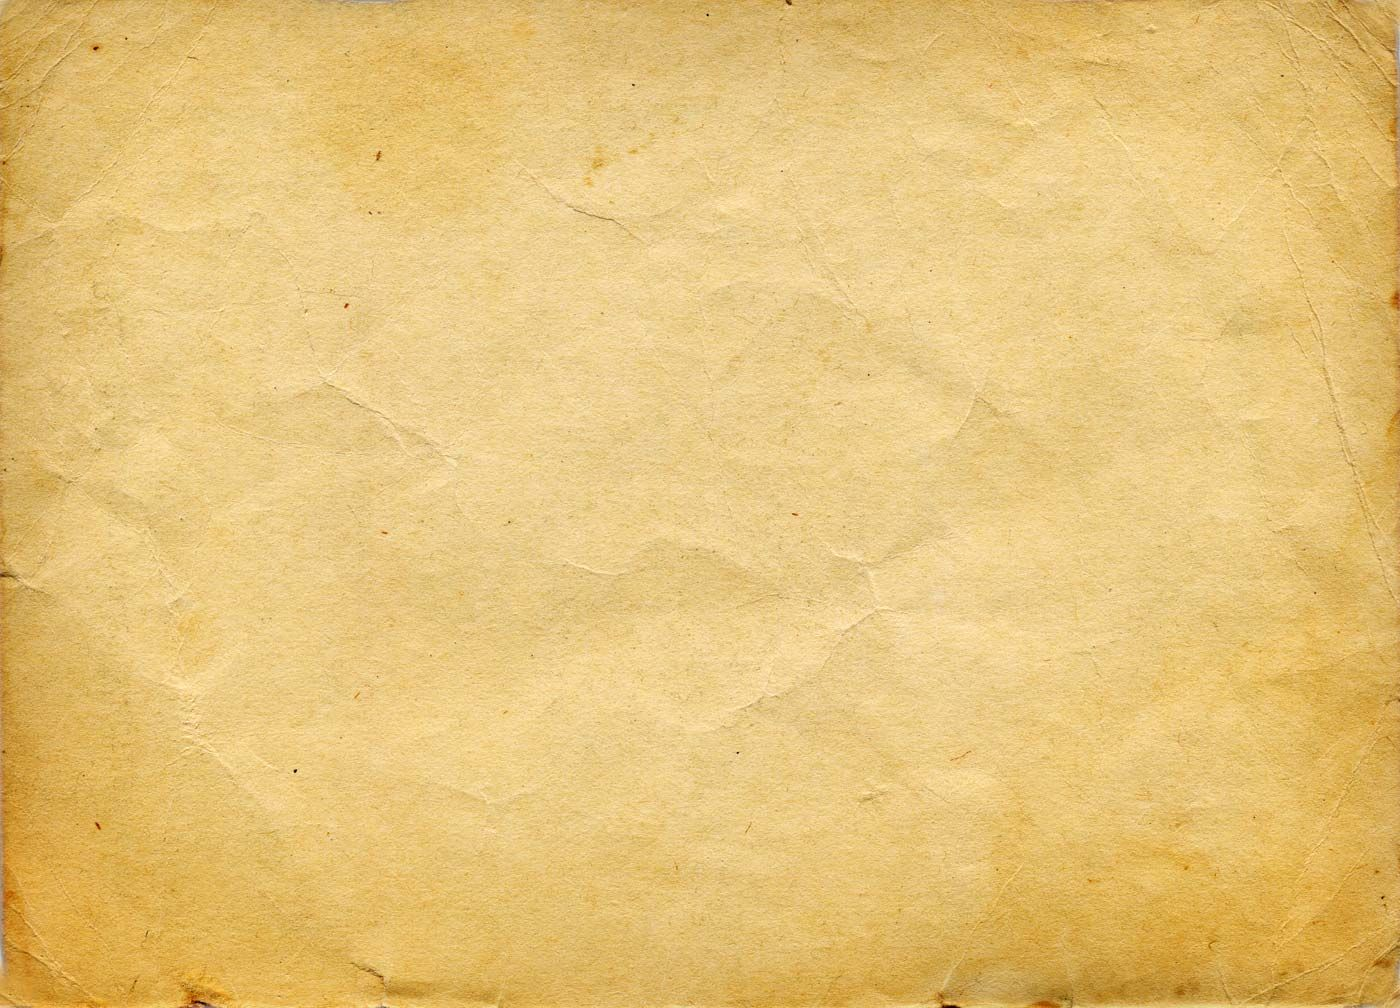 Paper Powerpoint Background Available In 1400x1008 This Powerpoint